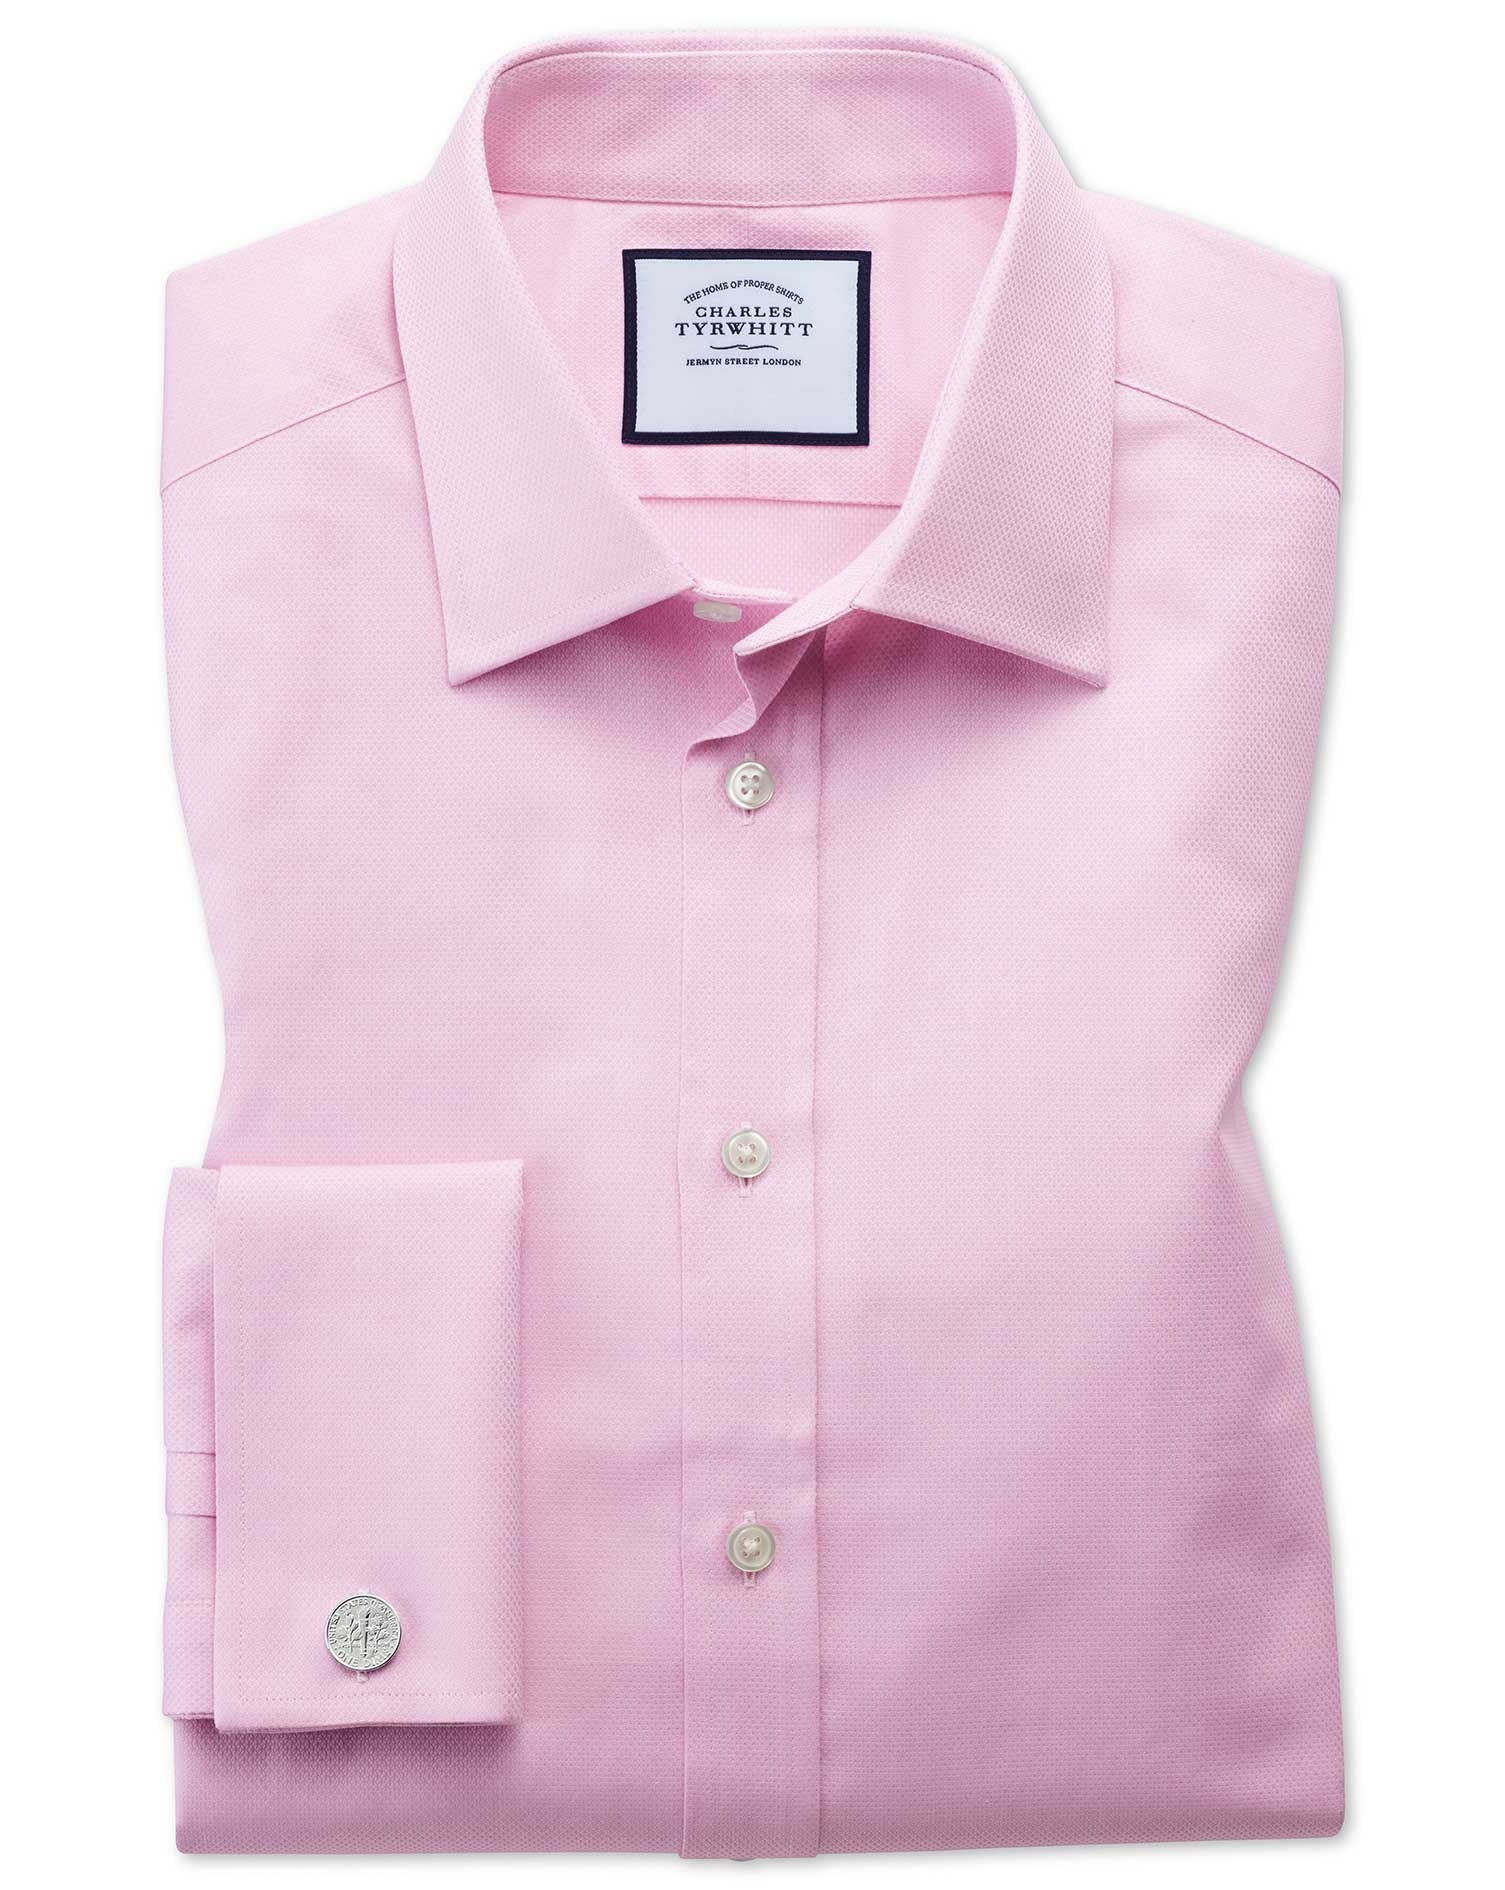 Classic Fit Egyptian Cotton Trellis Weave Pink Formal Shirt Single Cuff Size 16.5/33 by Charles Tyrw